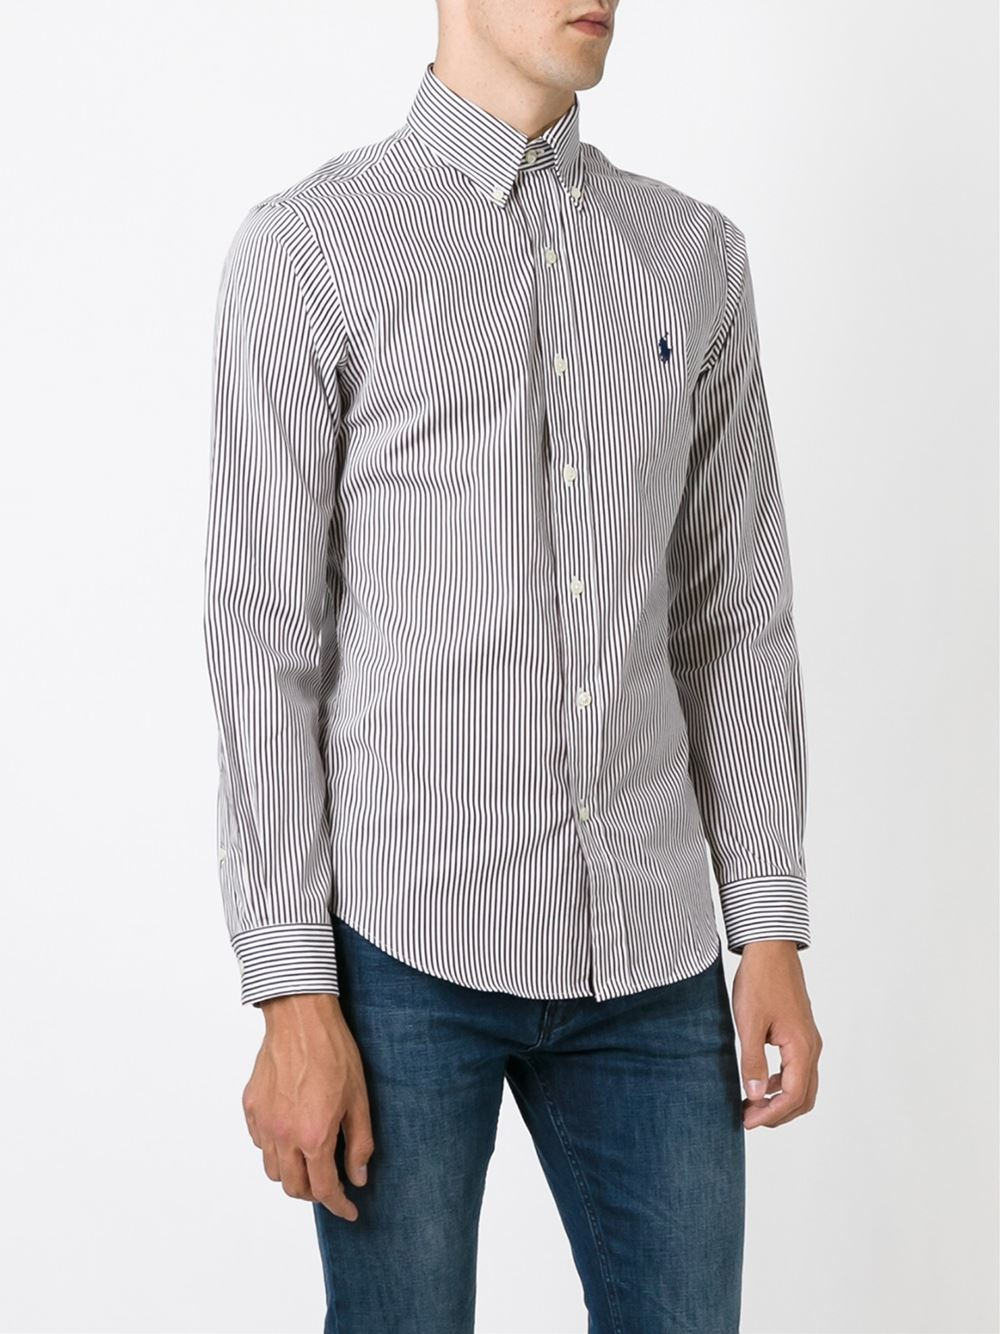 Polo Ralph Lauren Striped Button Down Shirt In Brown For